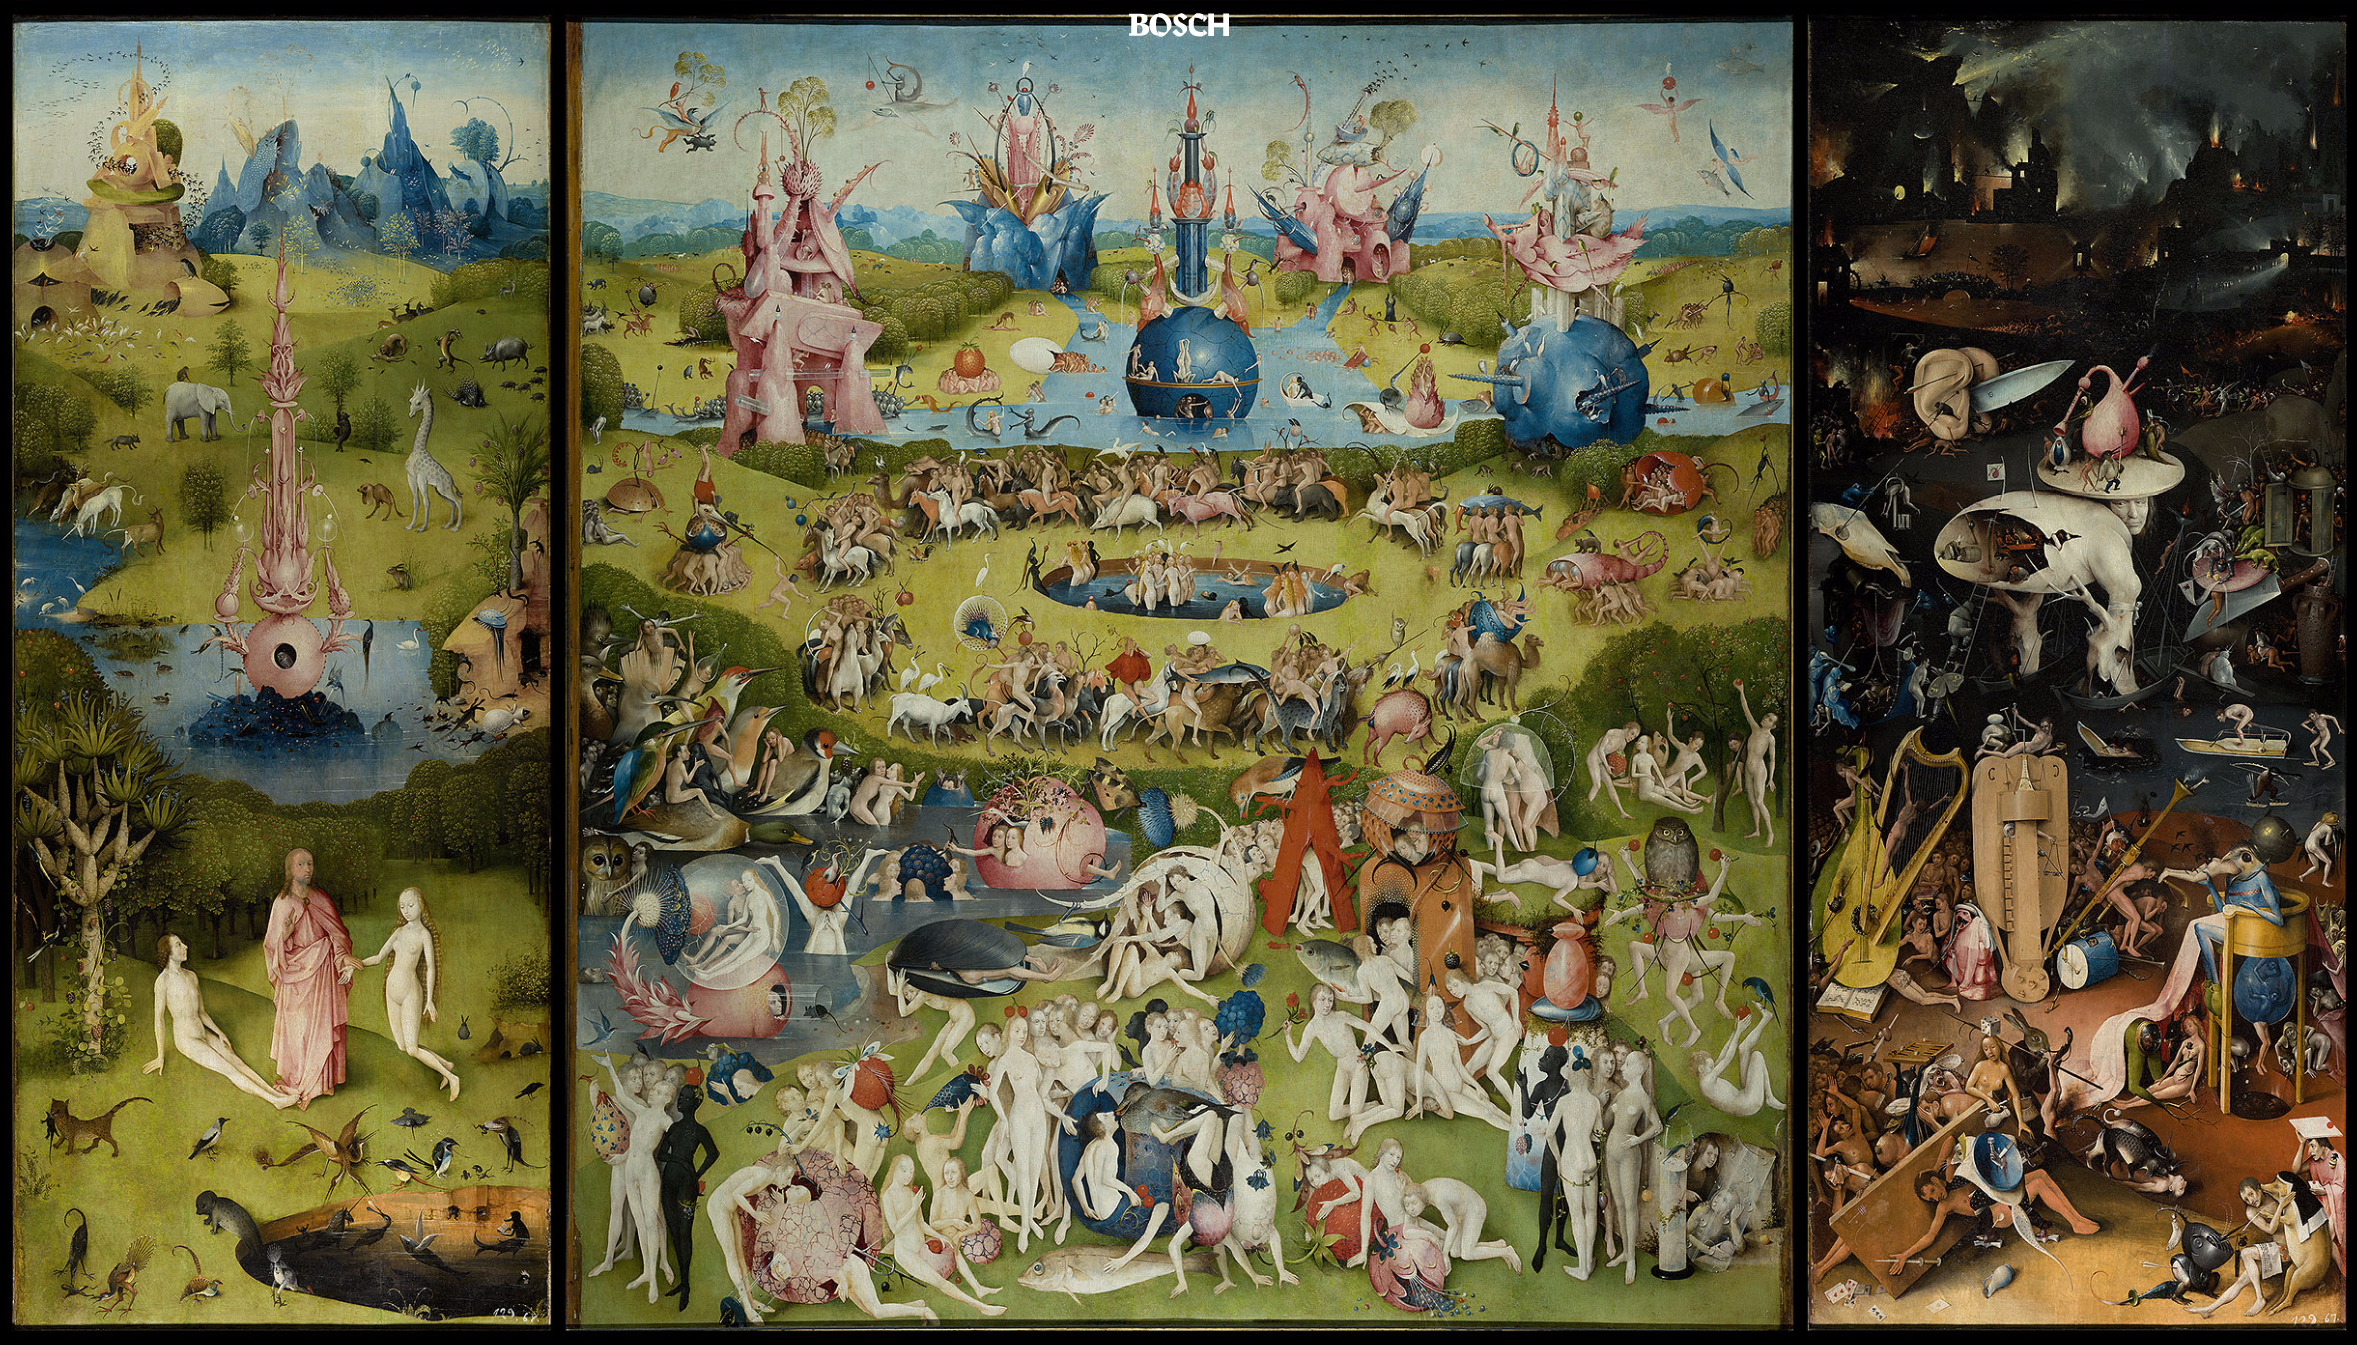 Explore \'The Garden of Earthly Delights\' in high resolution ...